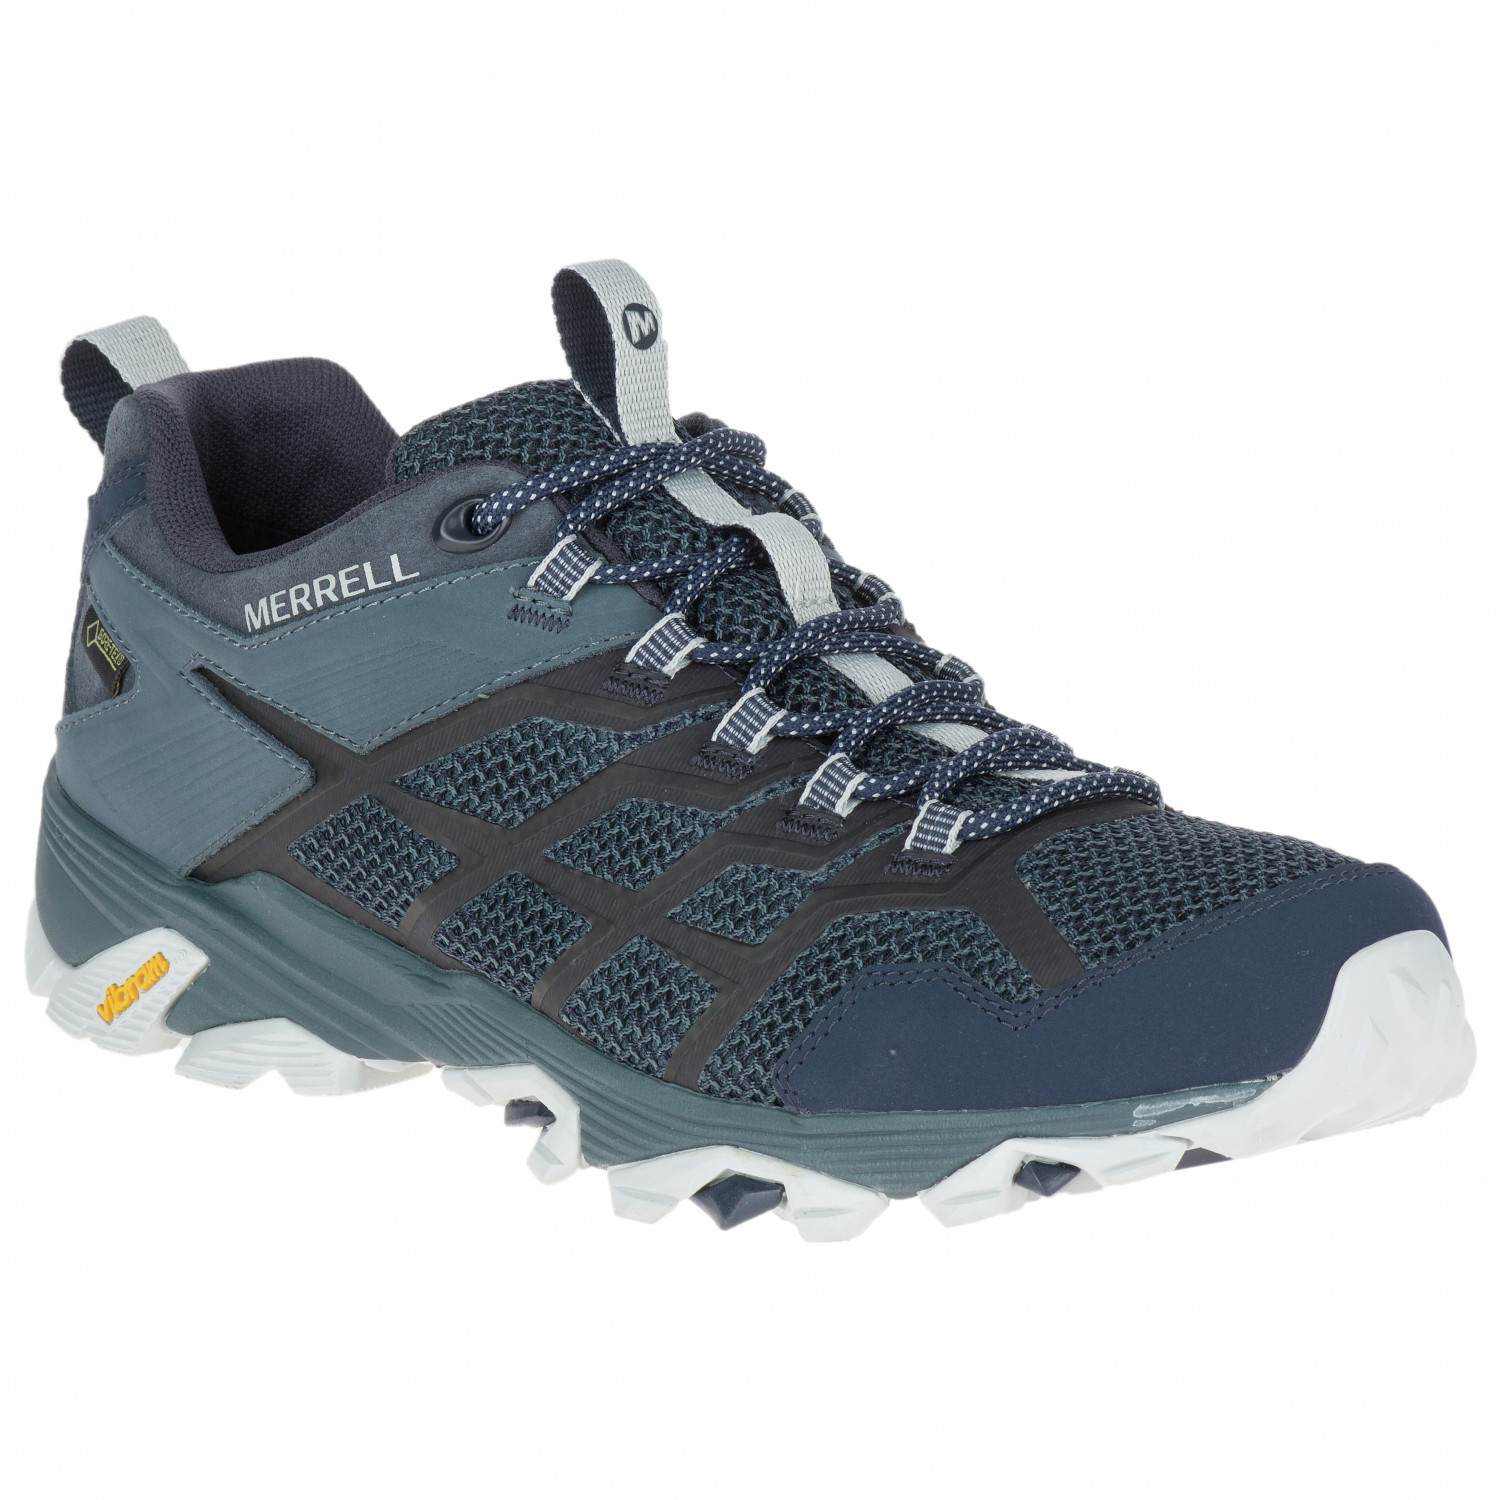 chaussures de sport 39bb8 5ac35 Merrell - Moab FST 2 GTX - Multisport shoes - Black / Granite | 46 (EU)